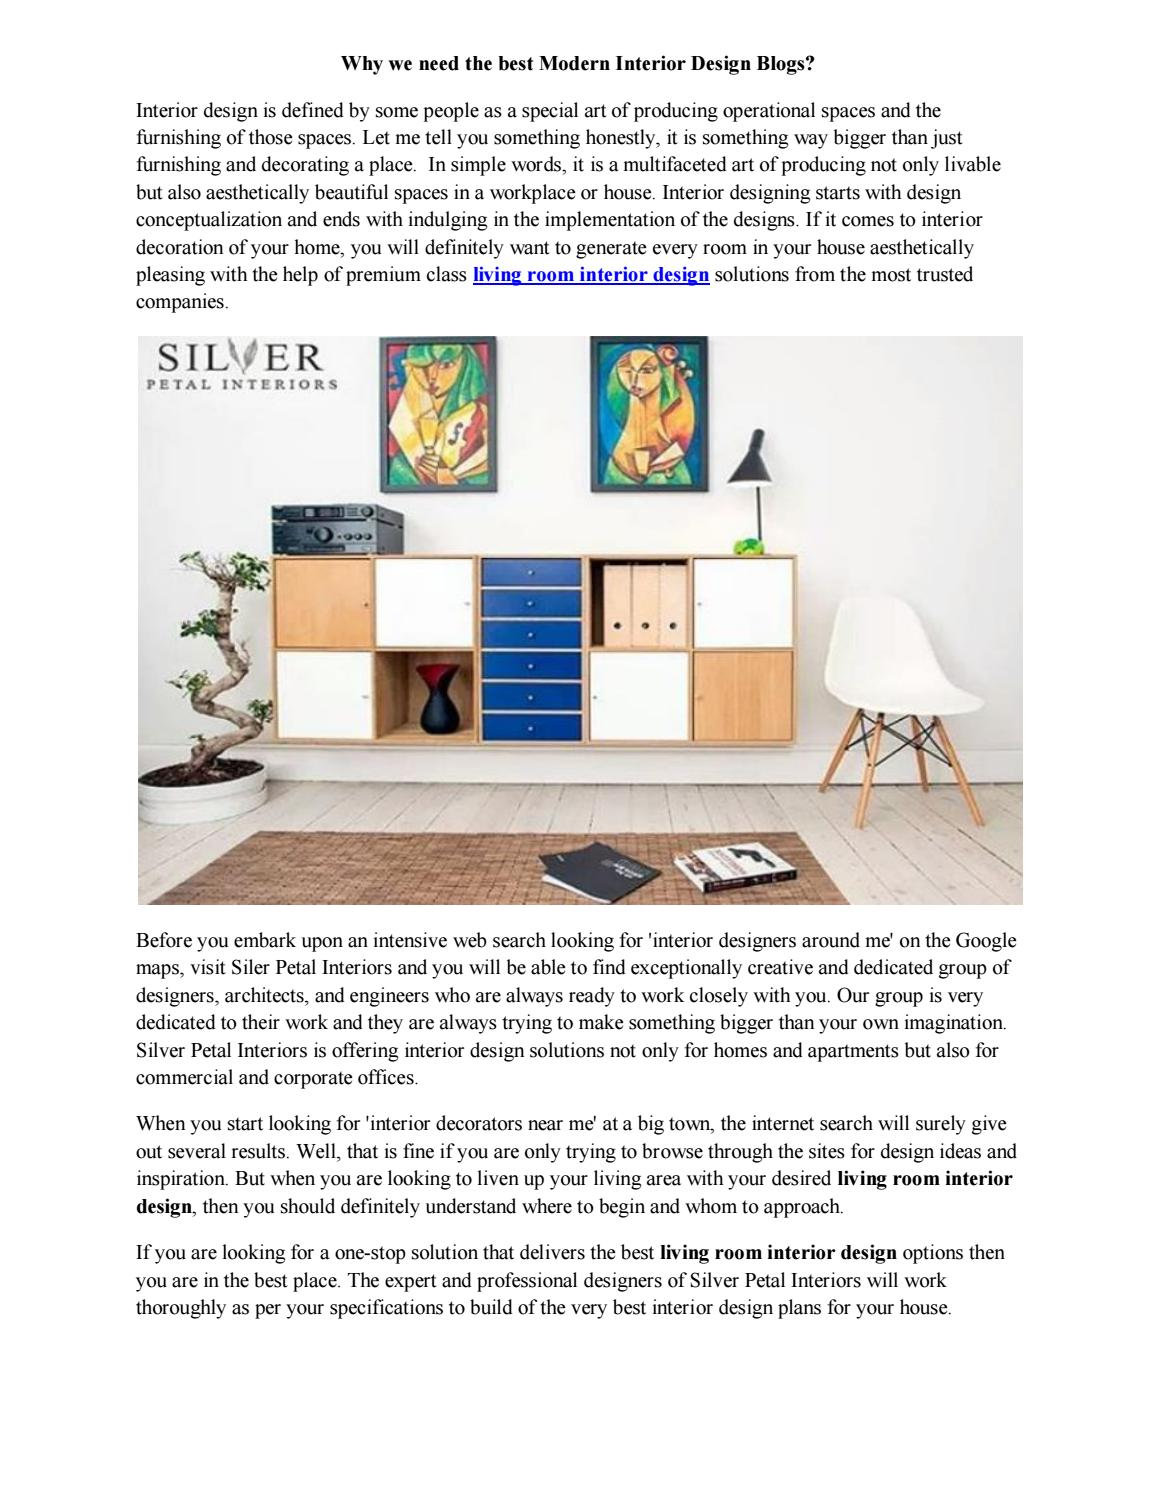 Why We Need The Best Modern Interior Design Blogs By Silverpetalinterior Issuu